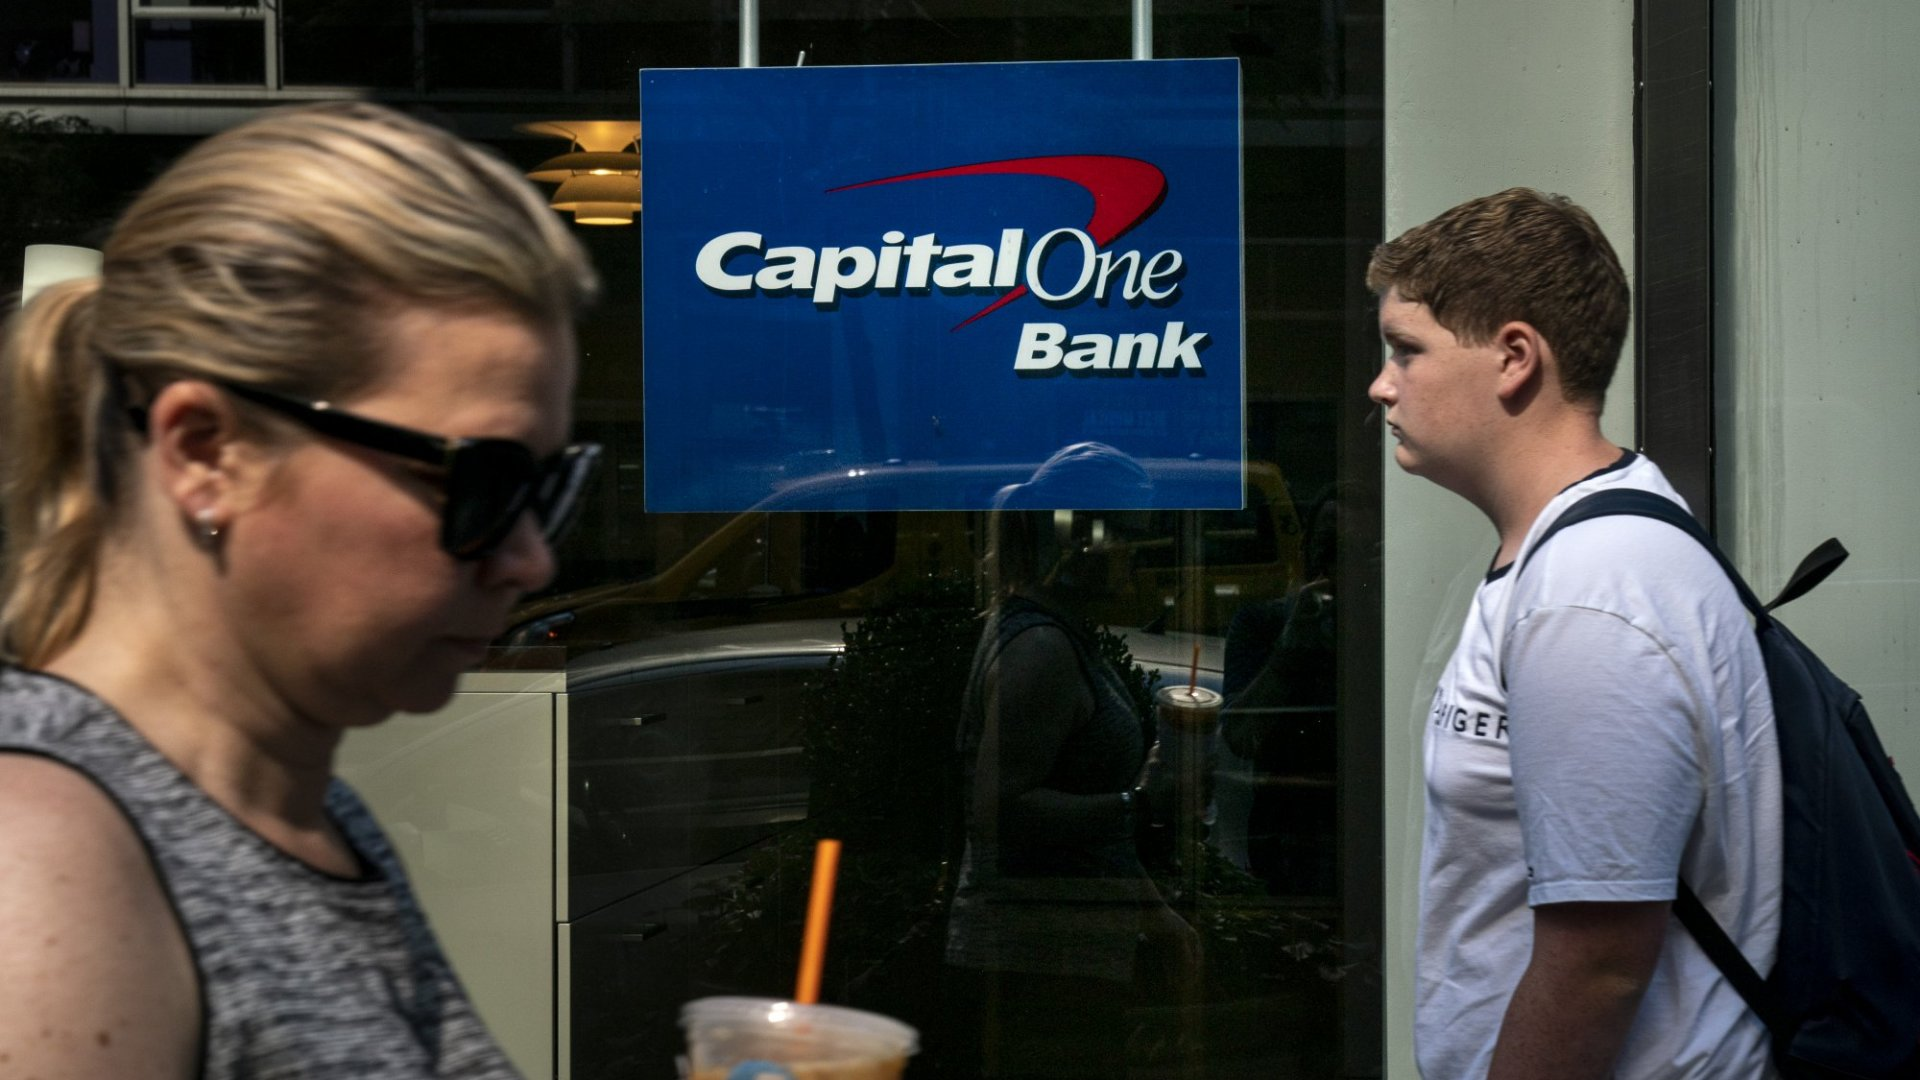 Companies Like Capital One Have to Do More Than 'Apologize' for Mistakes